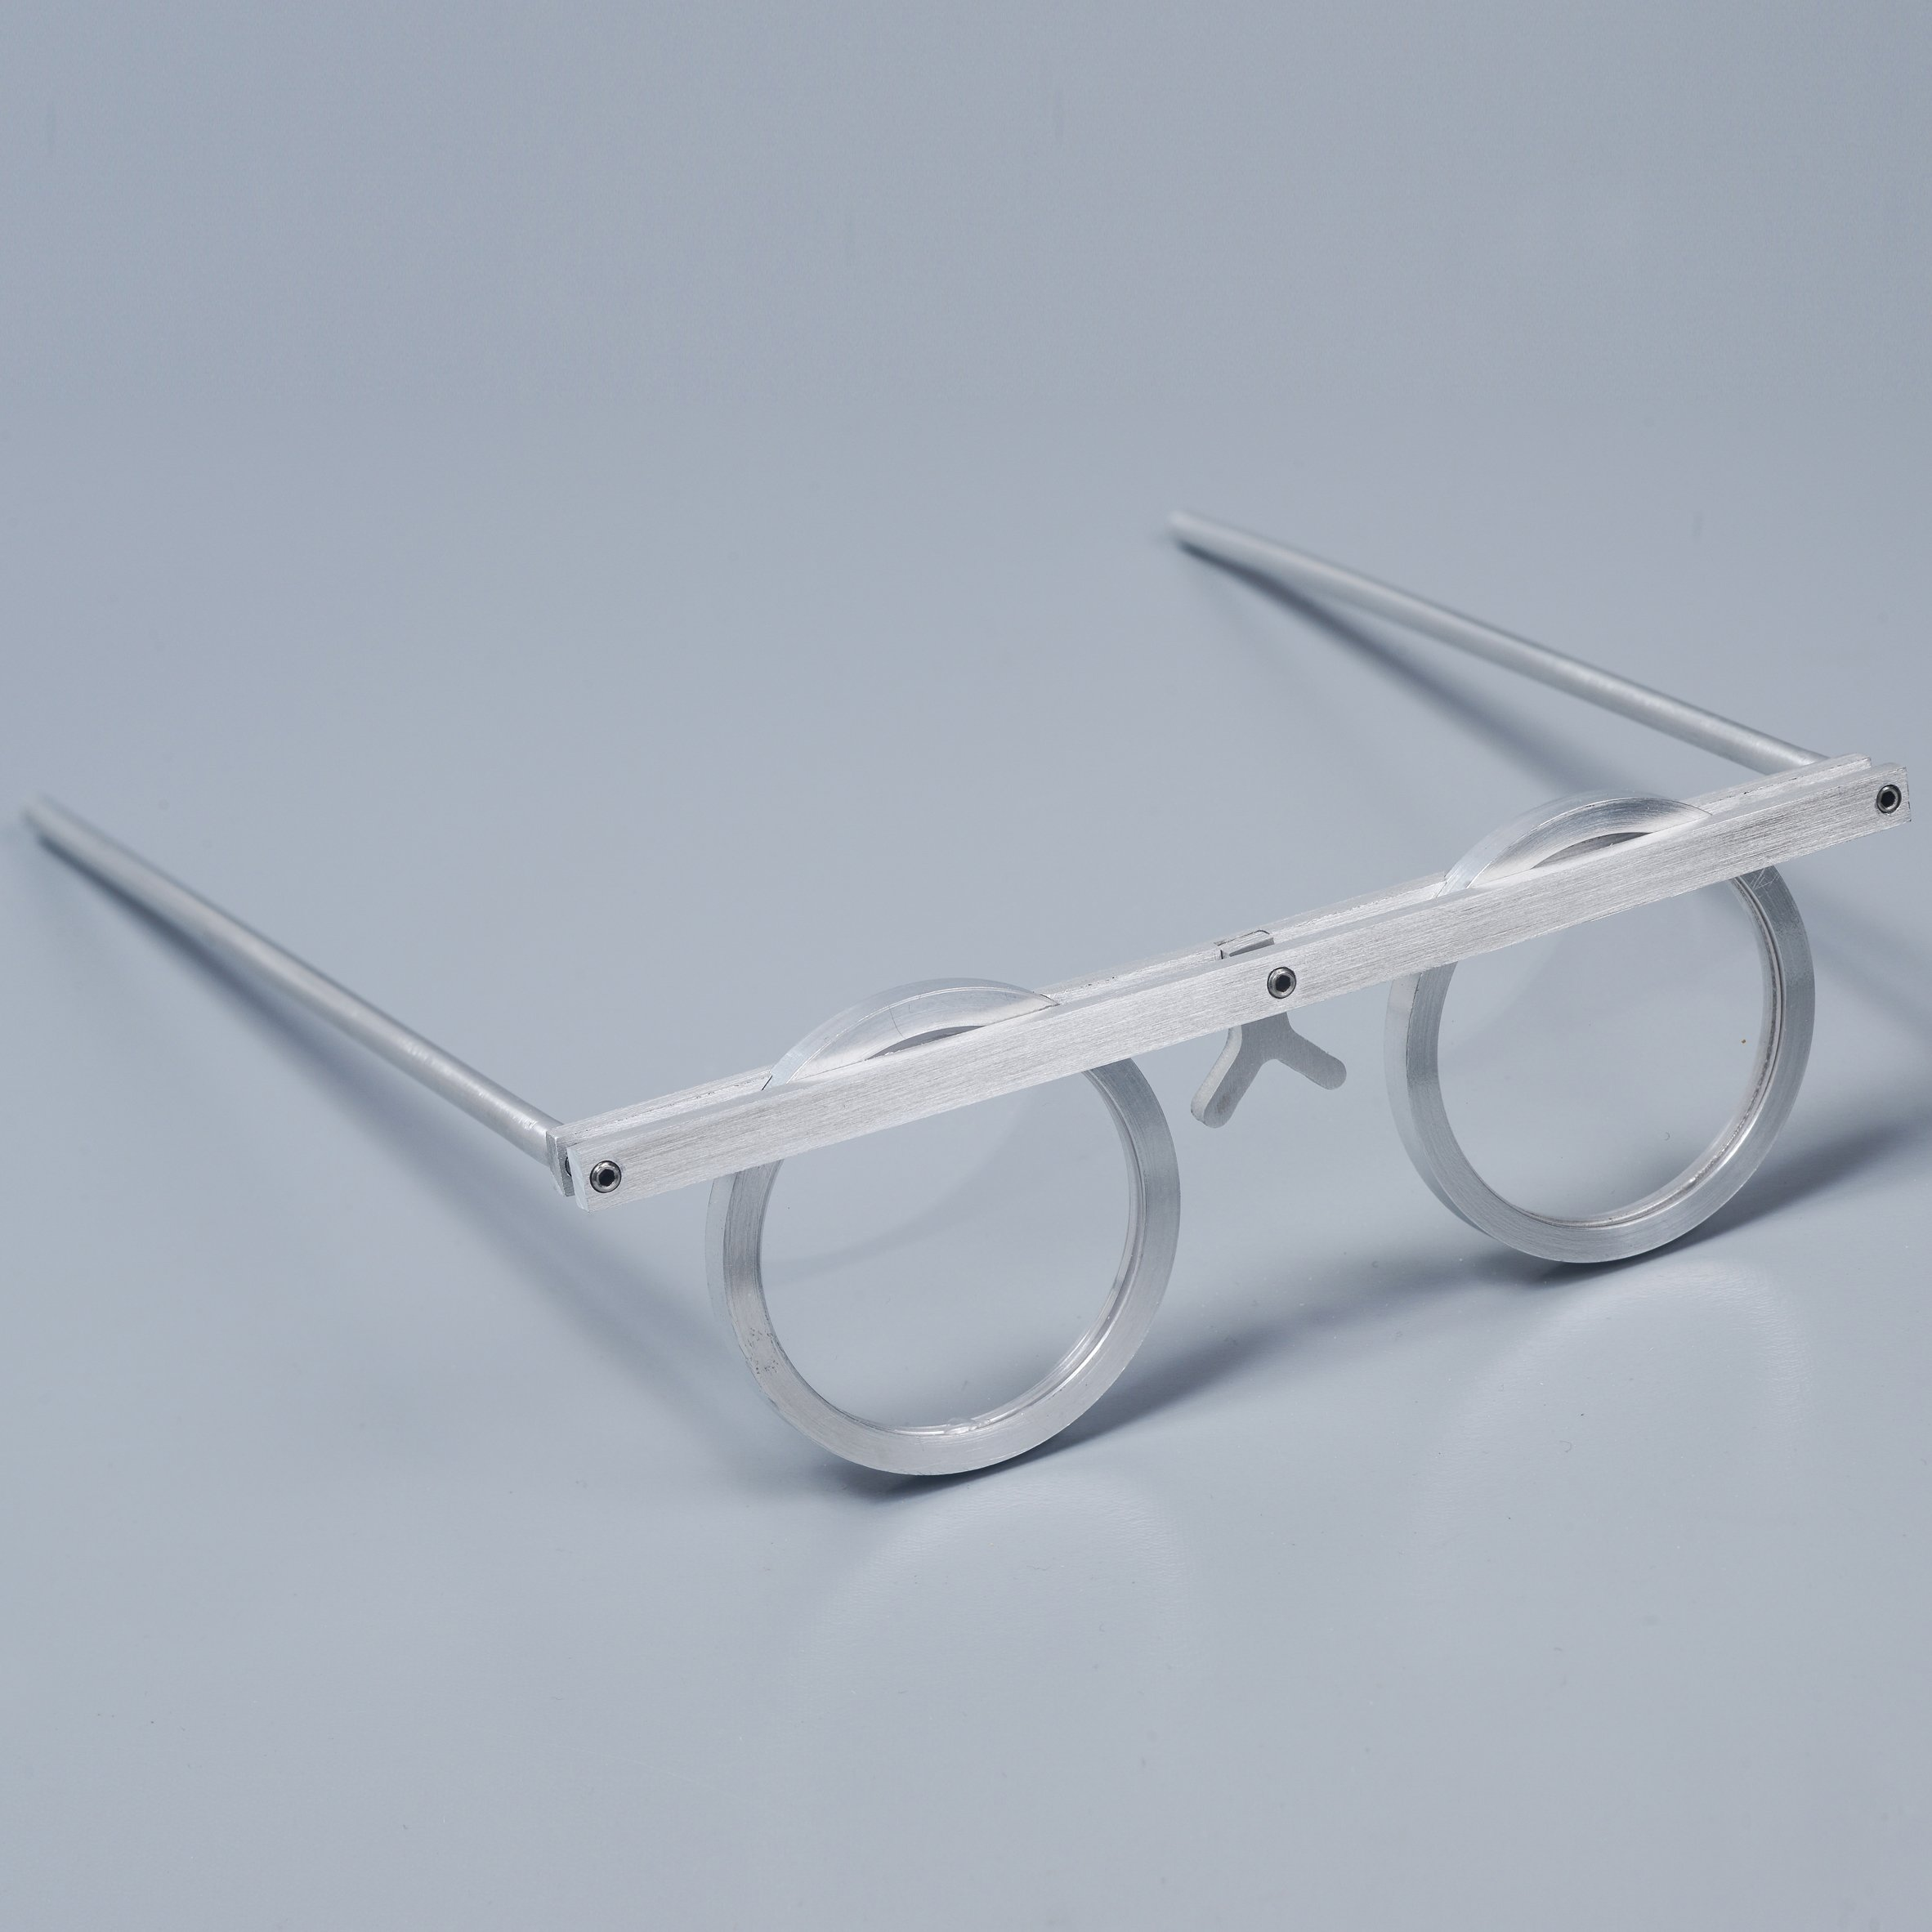 asaf-weinbroom-design-overview-eyewear-exhibition-design-museum-holon_dezeen_sq